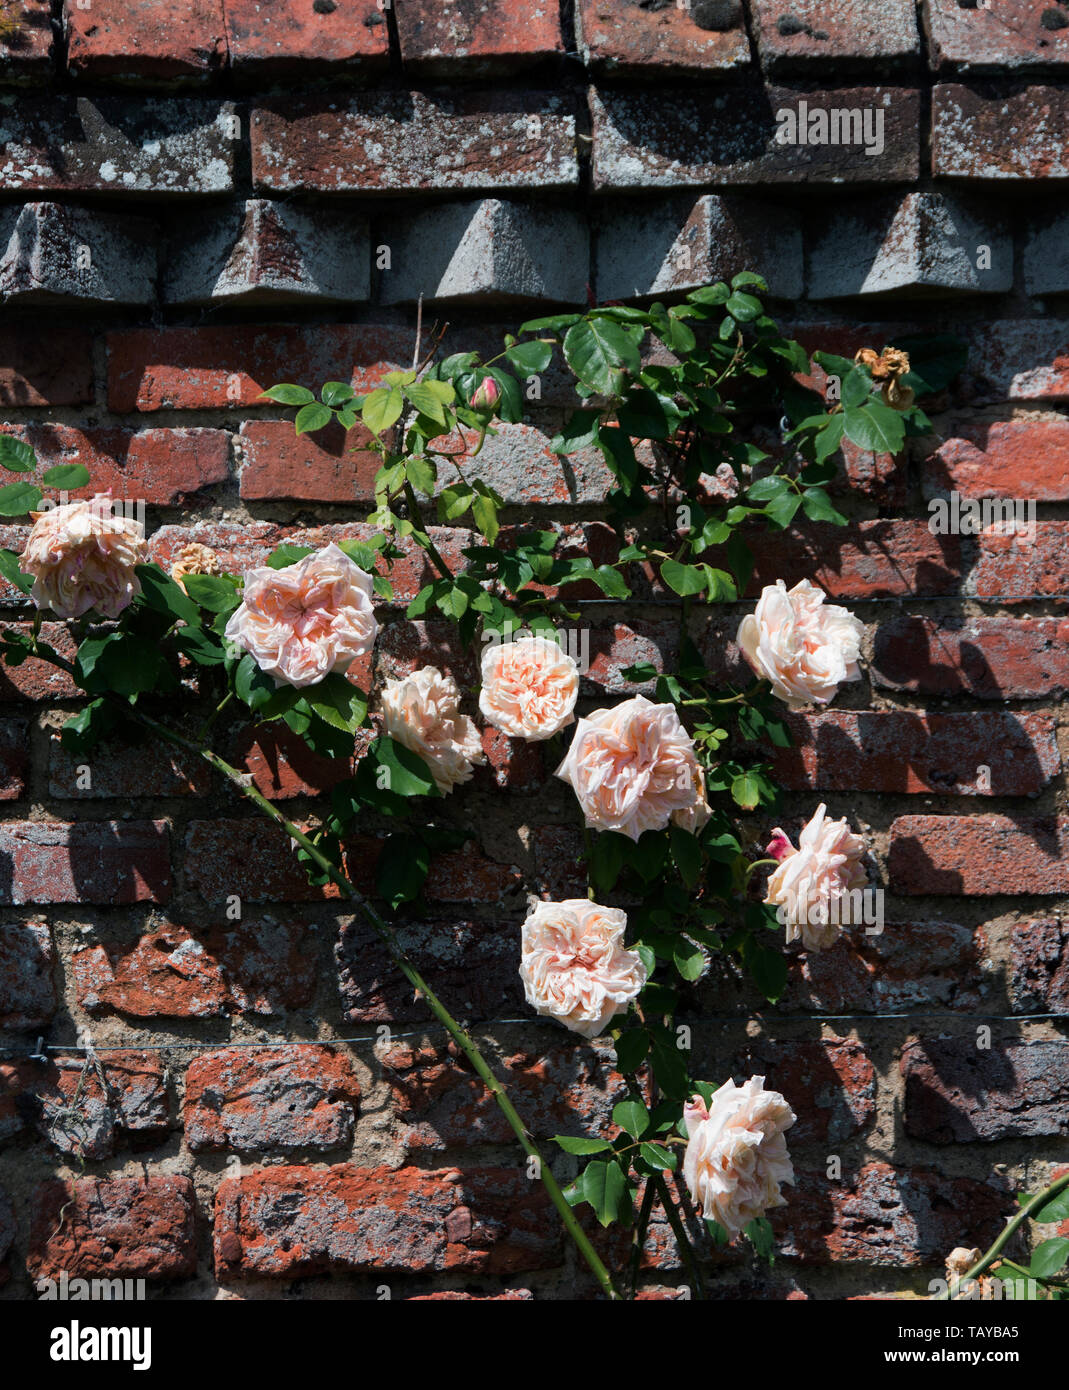 Rosa 'Shropshire Lad' has large, perfectly formed, slightly cupped, light peach-pink rosettes, with a lovely fruity Tea fragrance. A vigorous climber  - Stock Image